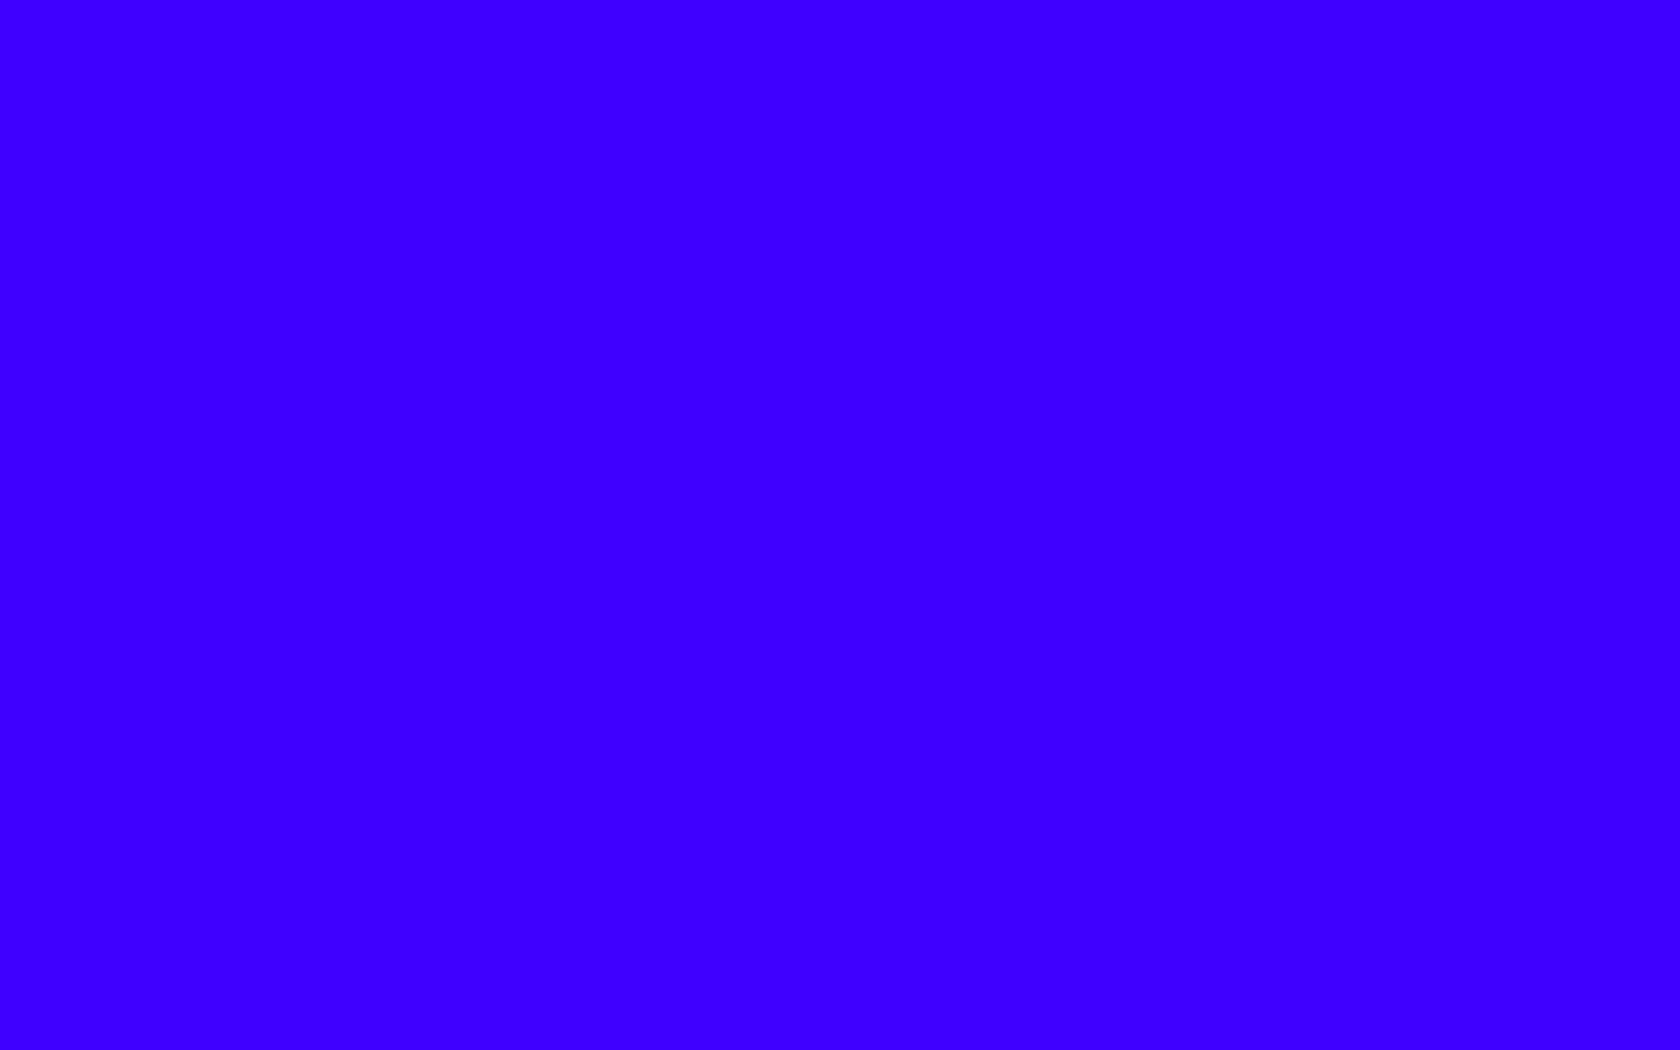 1680x1050 Electric Ultramarine Solid Color Background